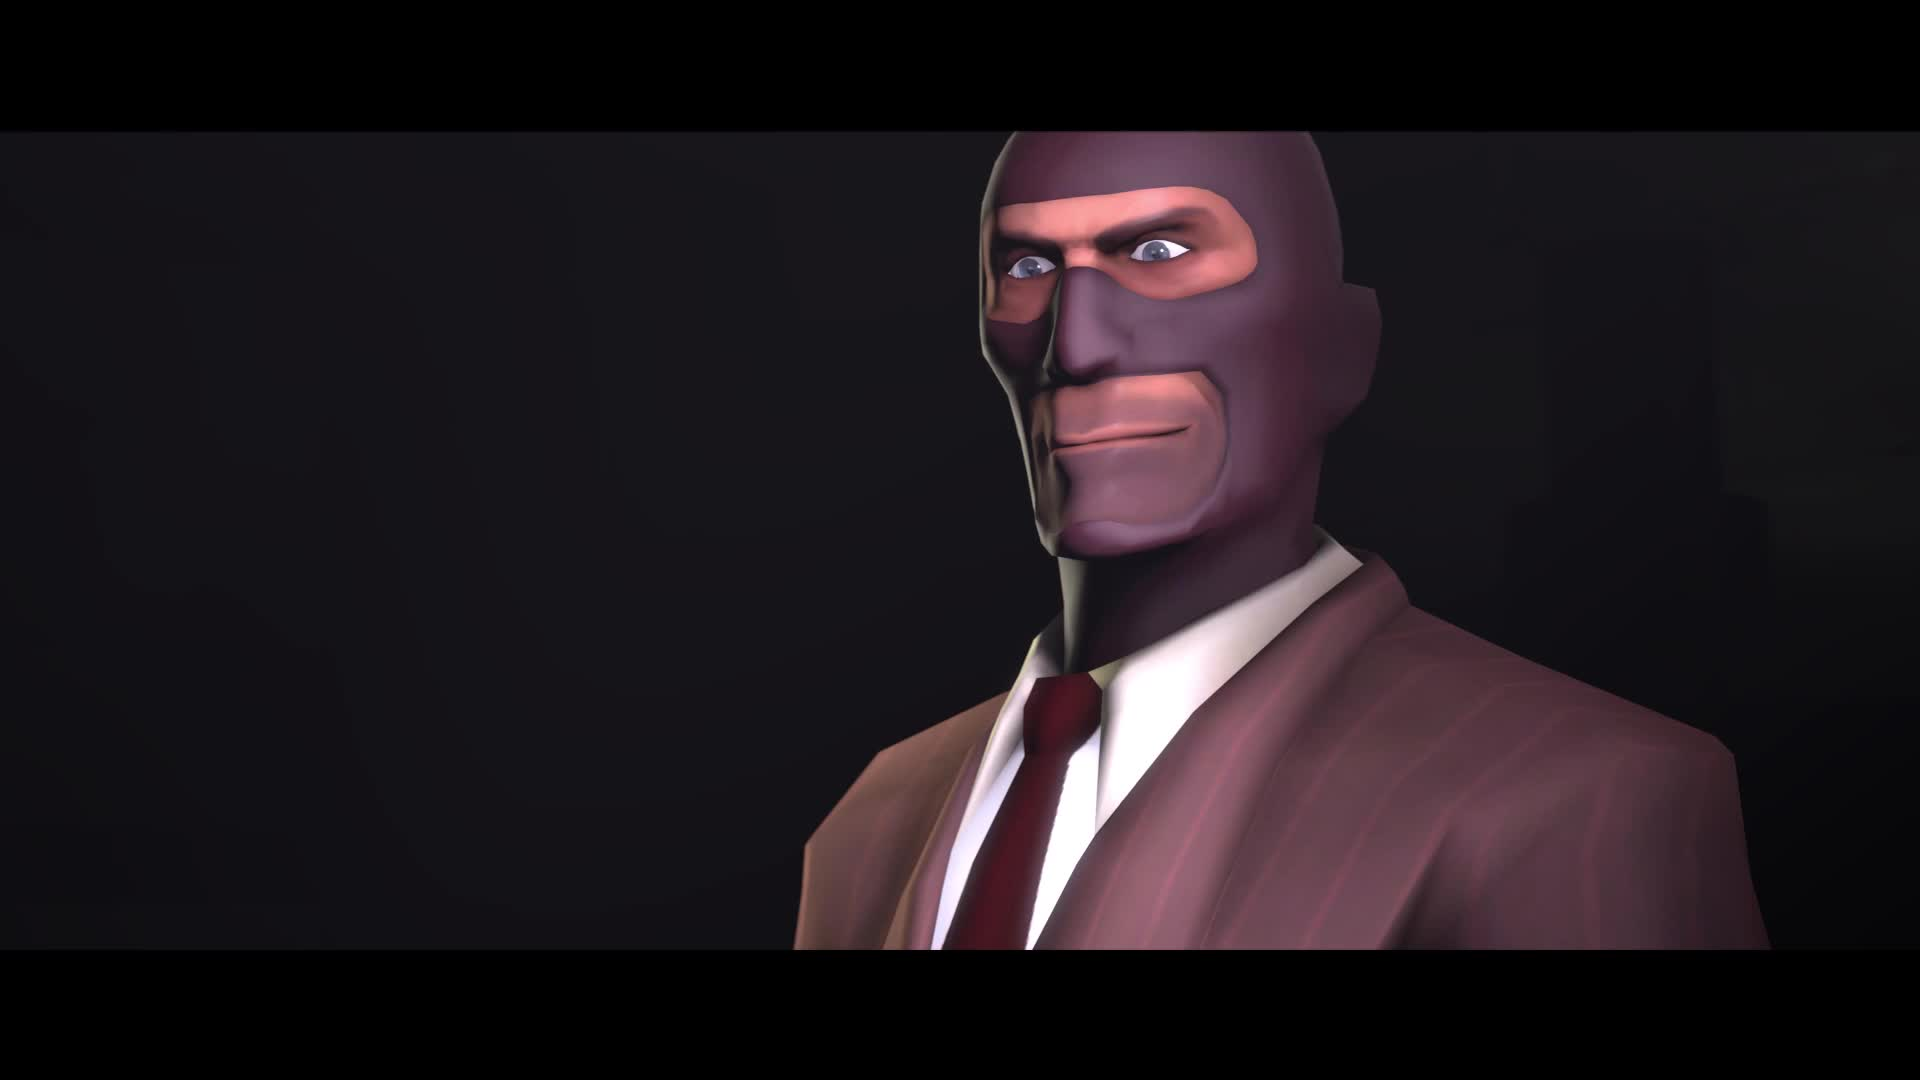 team fortress 2 expiration date